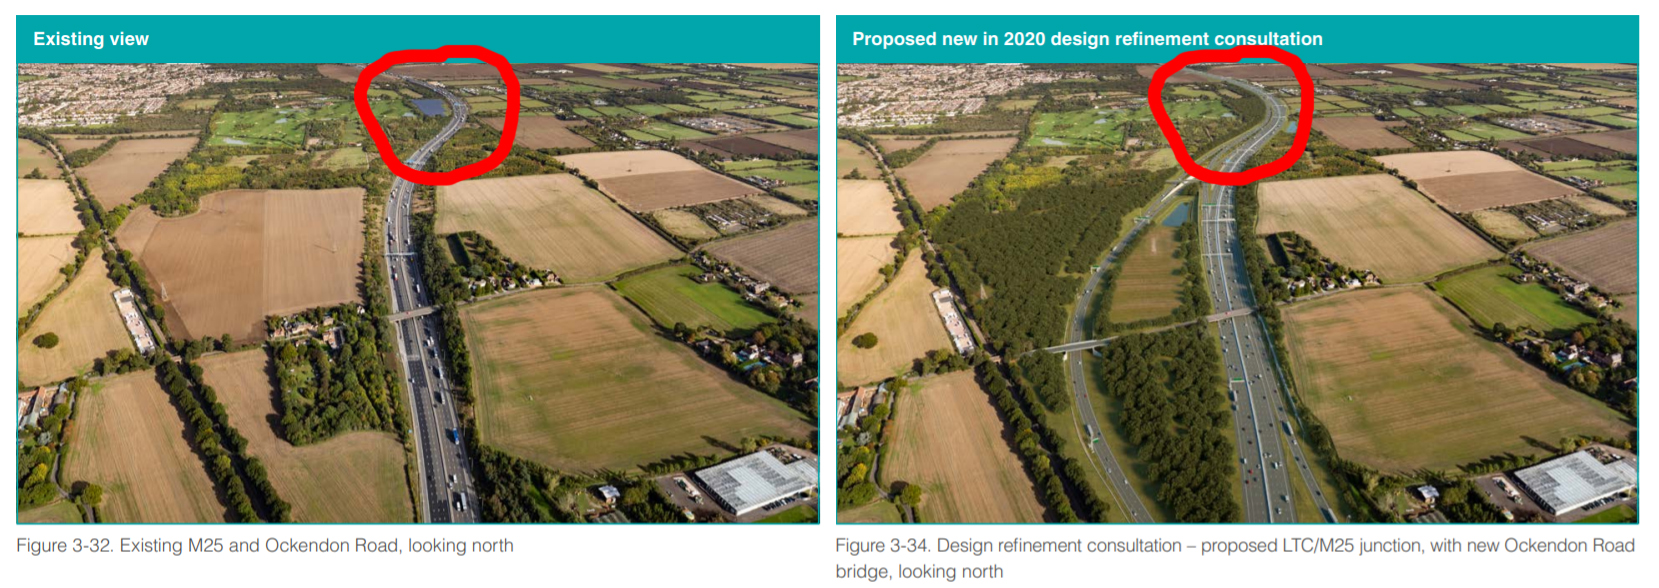 Cranham Solar Farm Demolished if LTC goes ahead, shown in the existing compared to proposed image in the LTC consultation guide